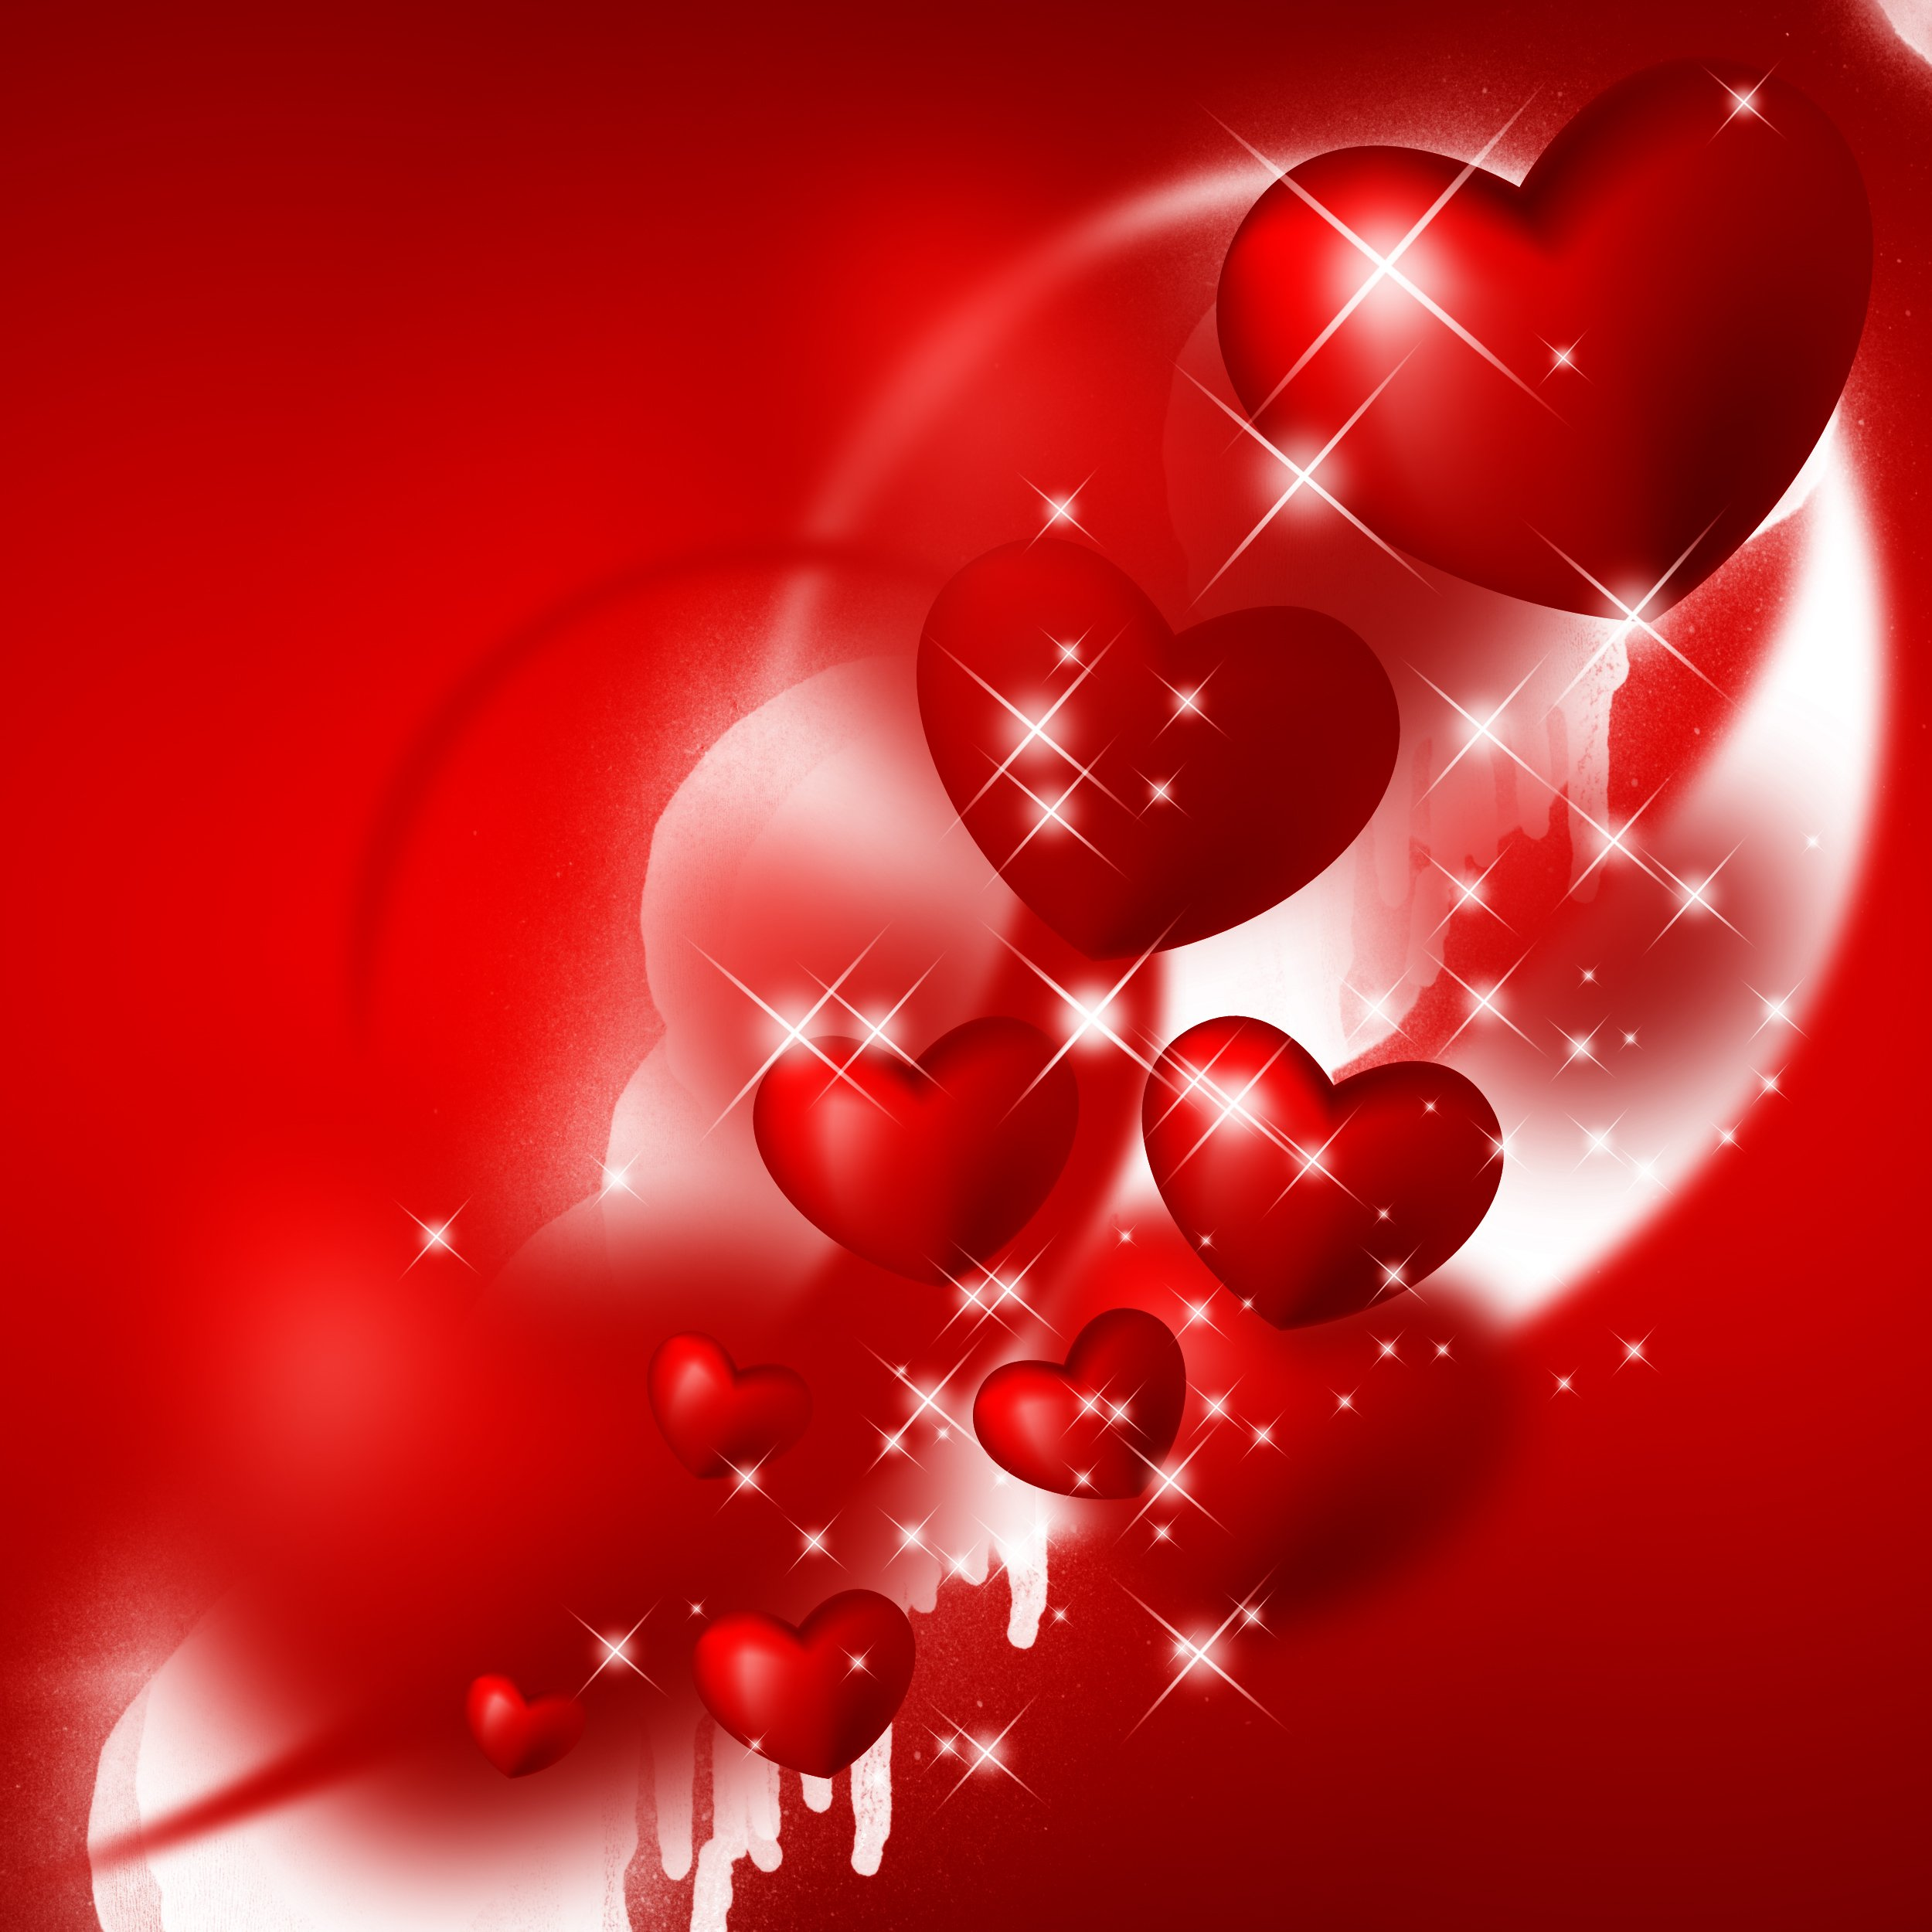 Valentine backgrounds and wallpaper wallpapersafari - Background for valentine pictures ...